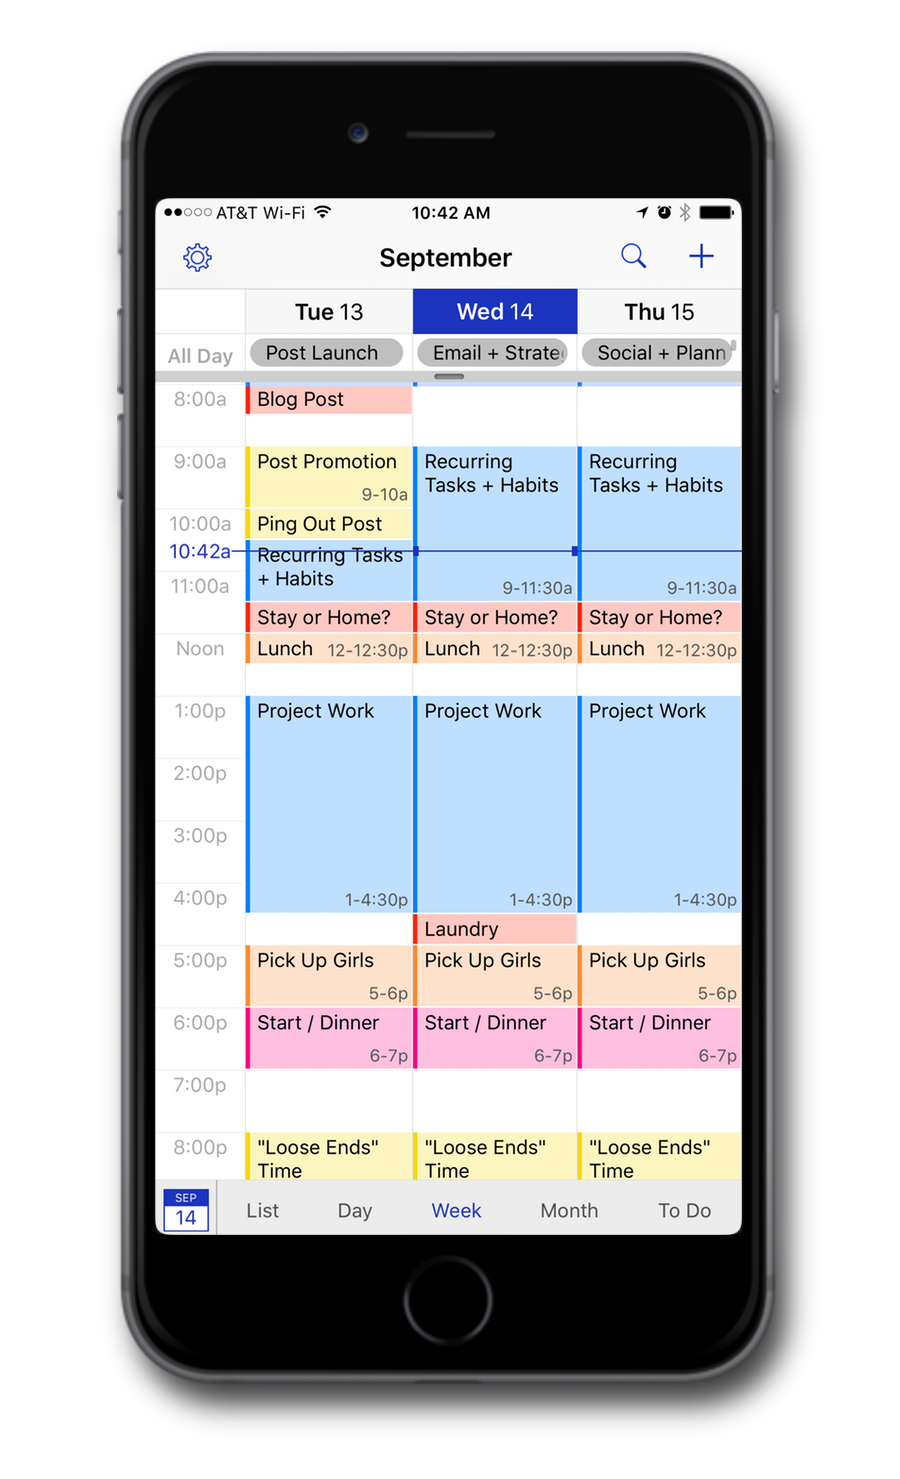 Example schedule of Daily Themes and Time Blocks to break up the day for your best use of time.